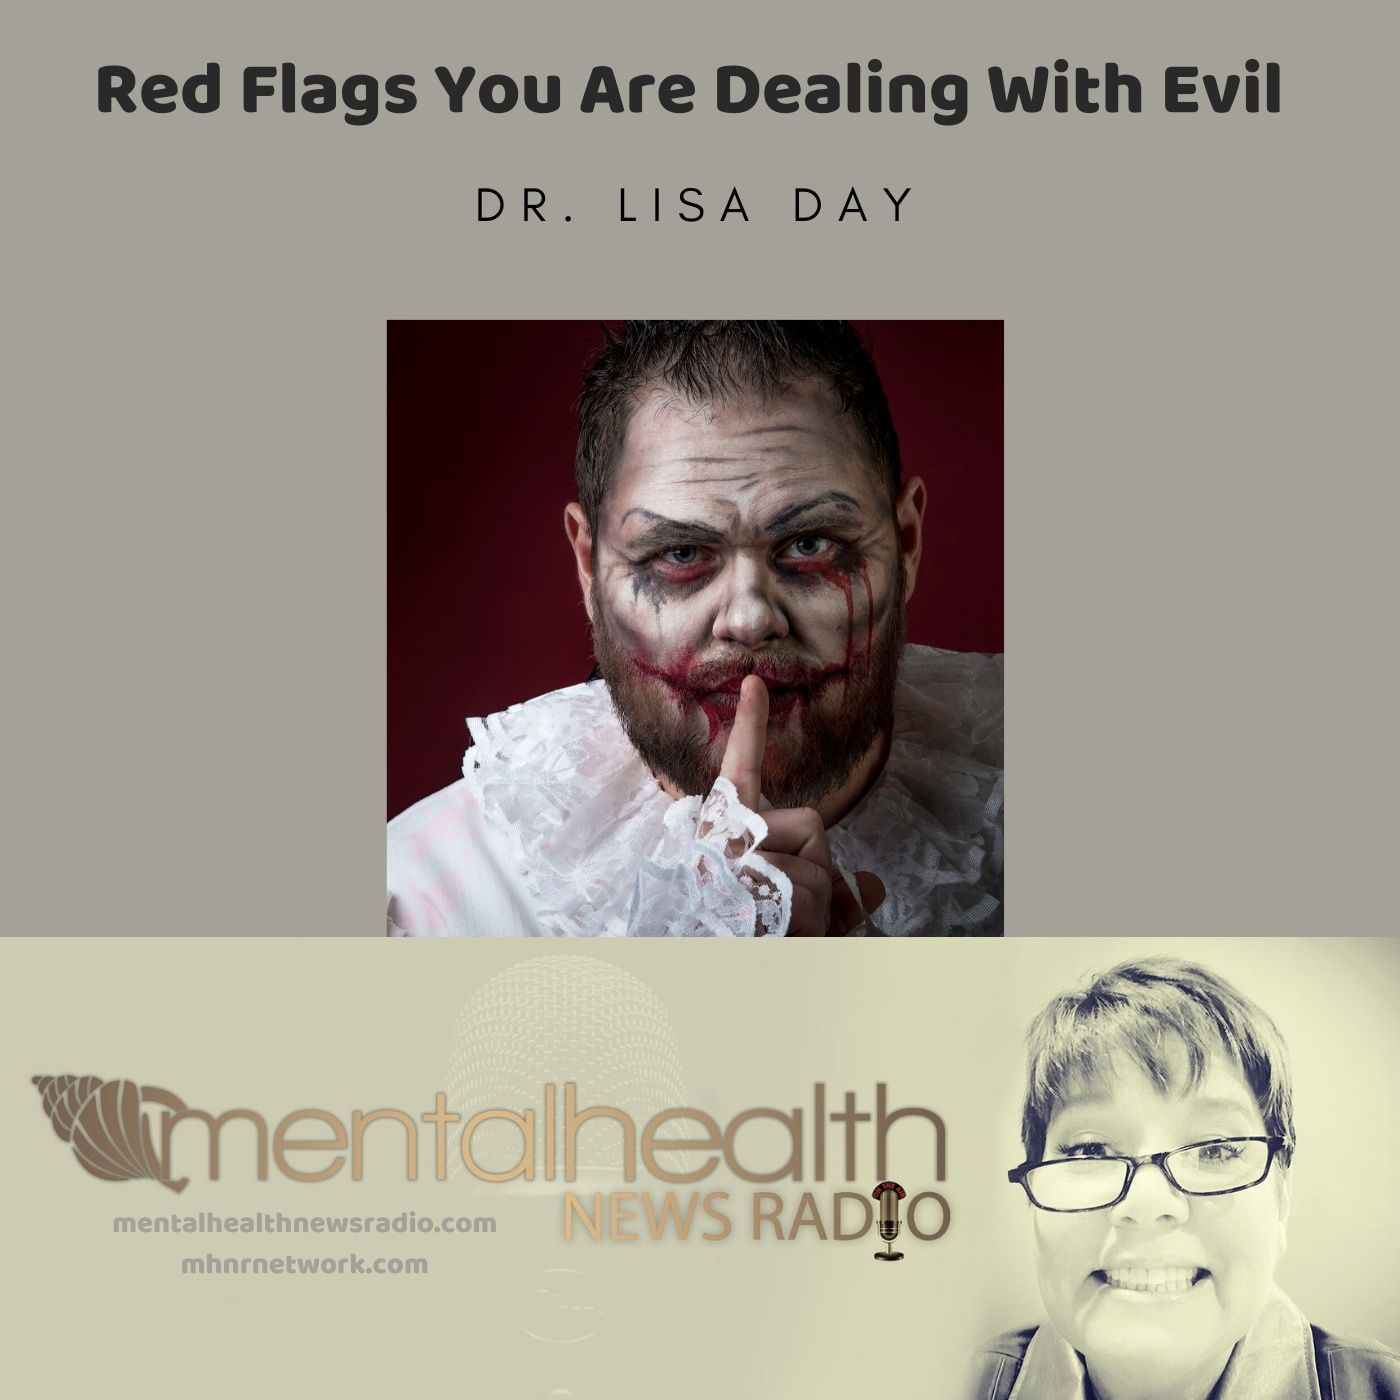 Mental Health News Radio - Red Flags You Are Dealing With Evil